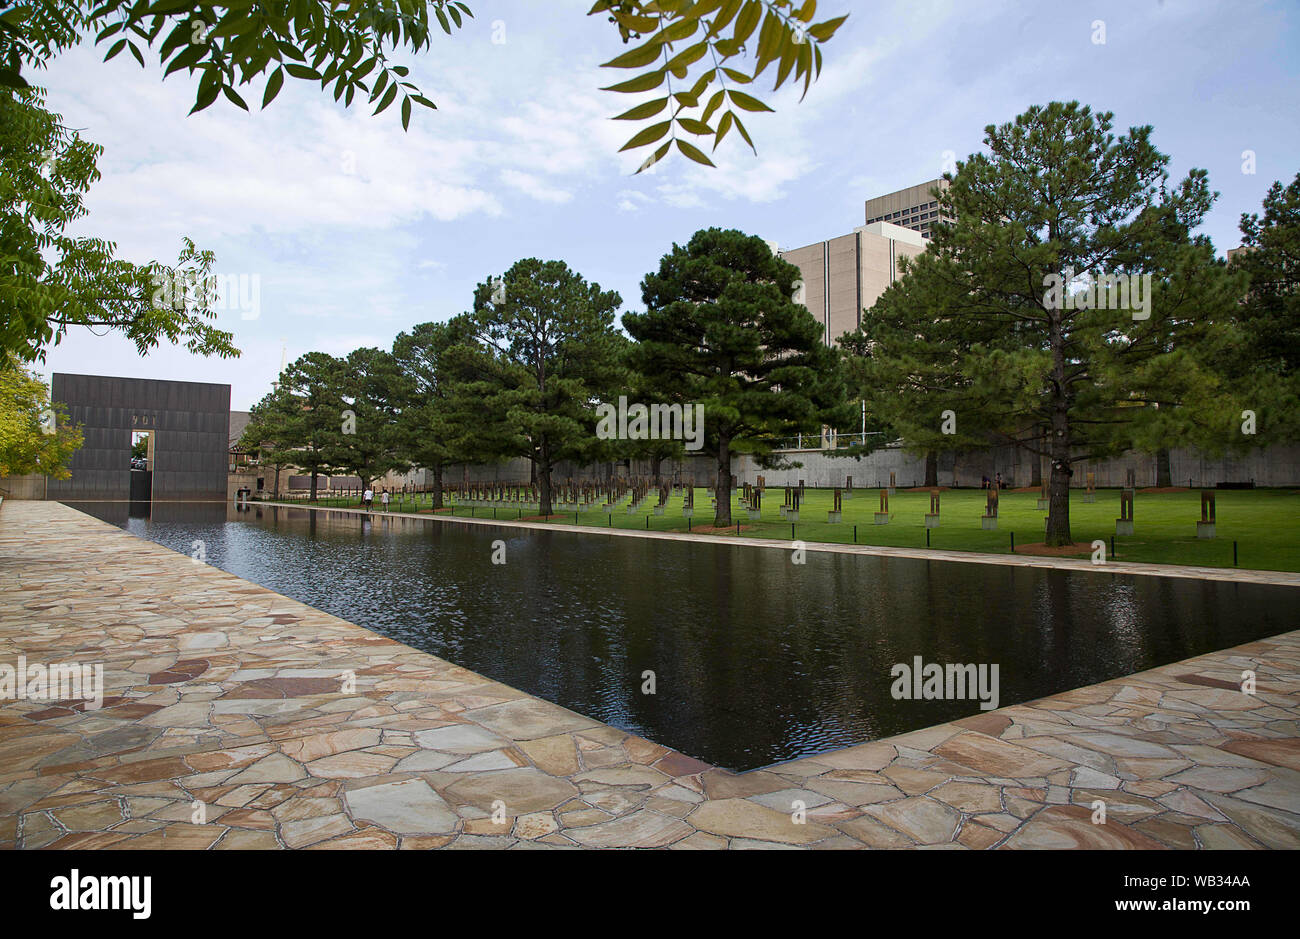 Oklahoma City, Oklahoma, USA. 22nd Aug, 2019. Aug 22, 2019, Oklahoma City, Oklahoma, The Oklahoma City National Memorial opened February 19, 2001 and honors the victims, survivors, and those affected by the Oklahoma City bombing on April 19, 1995. The memorial is located in downtown Oklahoma City on the former site of the Alfred P. Murrah Federal Building, which was destroyed in the 1995 bombing which occurred at 9:02 a.m. Credit: Ralph Lauer/ZUMA Wire/Alamy Live News Stock Photo